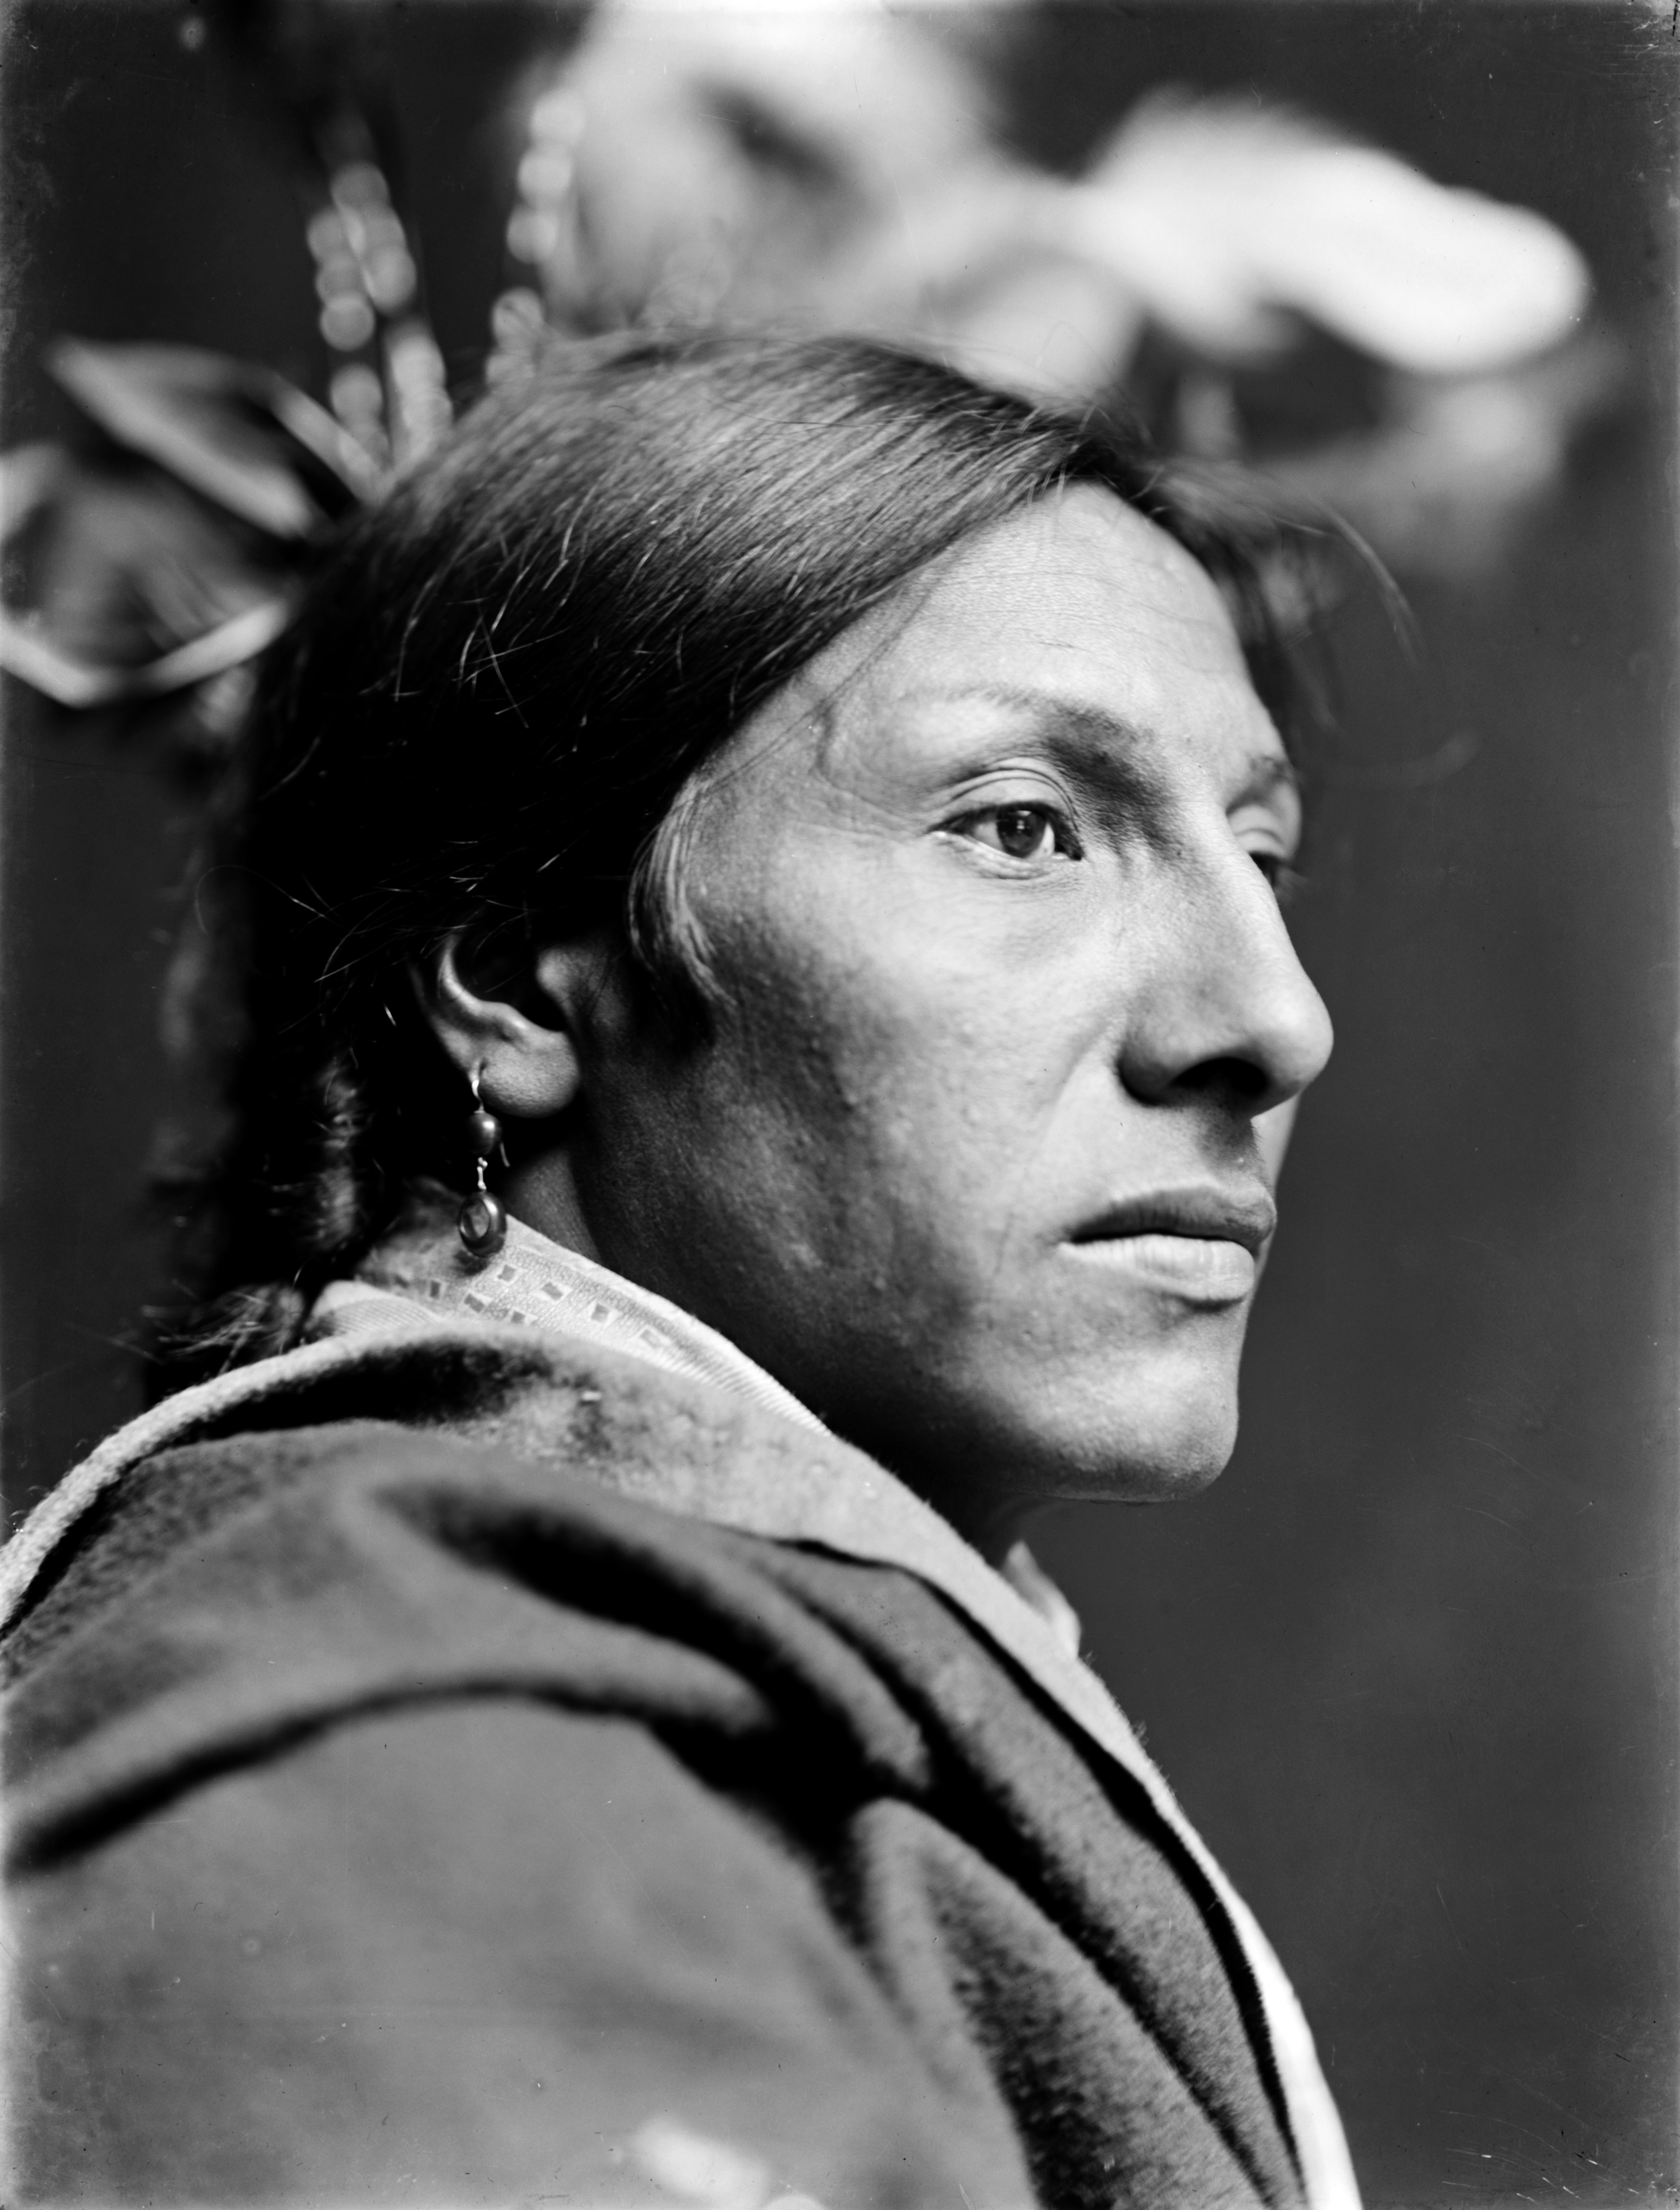 https://i2.wp.com/upload.wikimedia.org/wikipedia/commons/6/66/Amos_Two_Bulls,_Dakota_Sioux,_by_Gertrude_K%C3%A4sebier,_ca._1900_(3).jpg